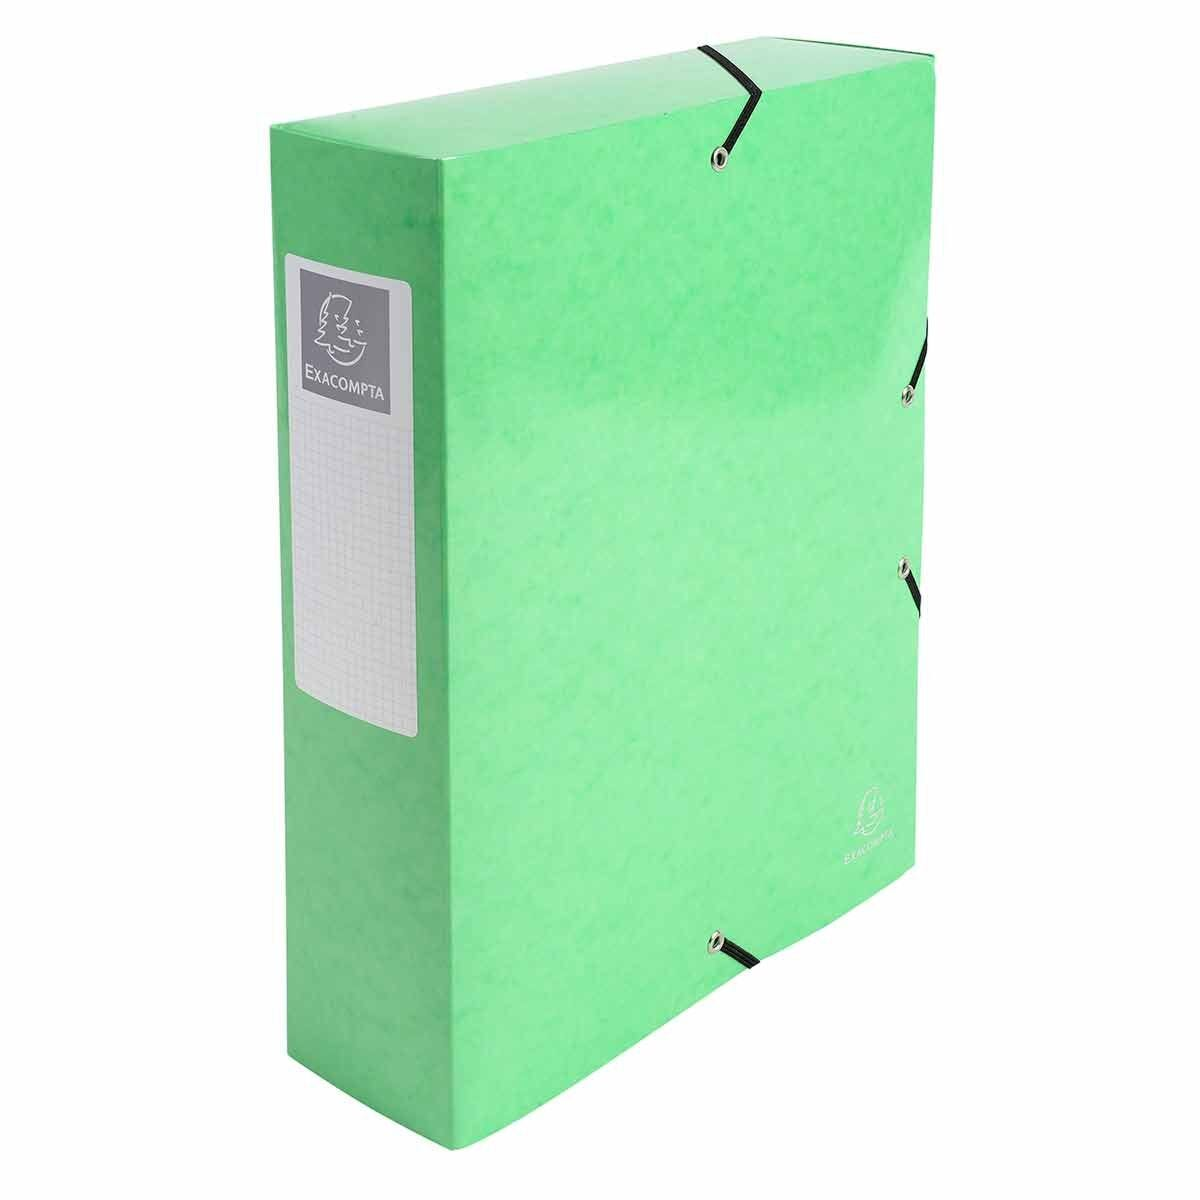 Exacompta Iderama Elasticated A4 Box File 80mm Pack of 6 Lime Green